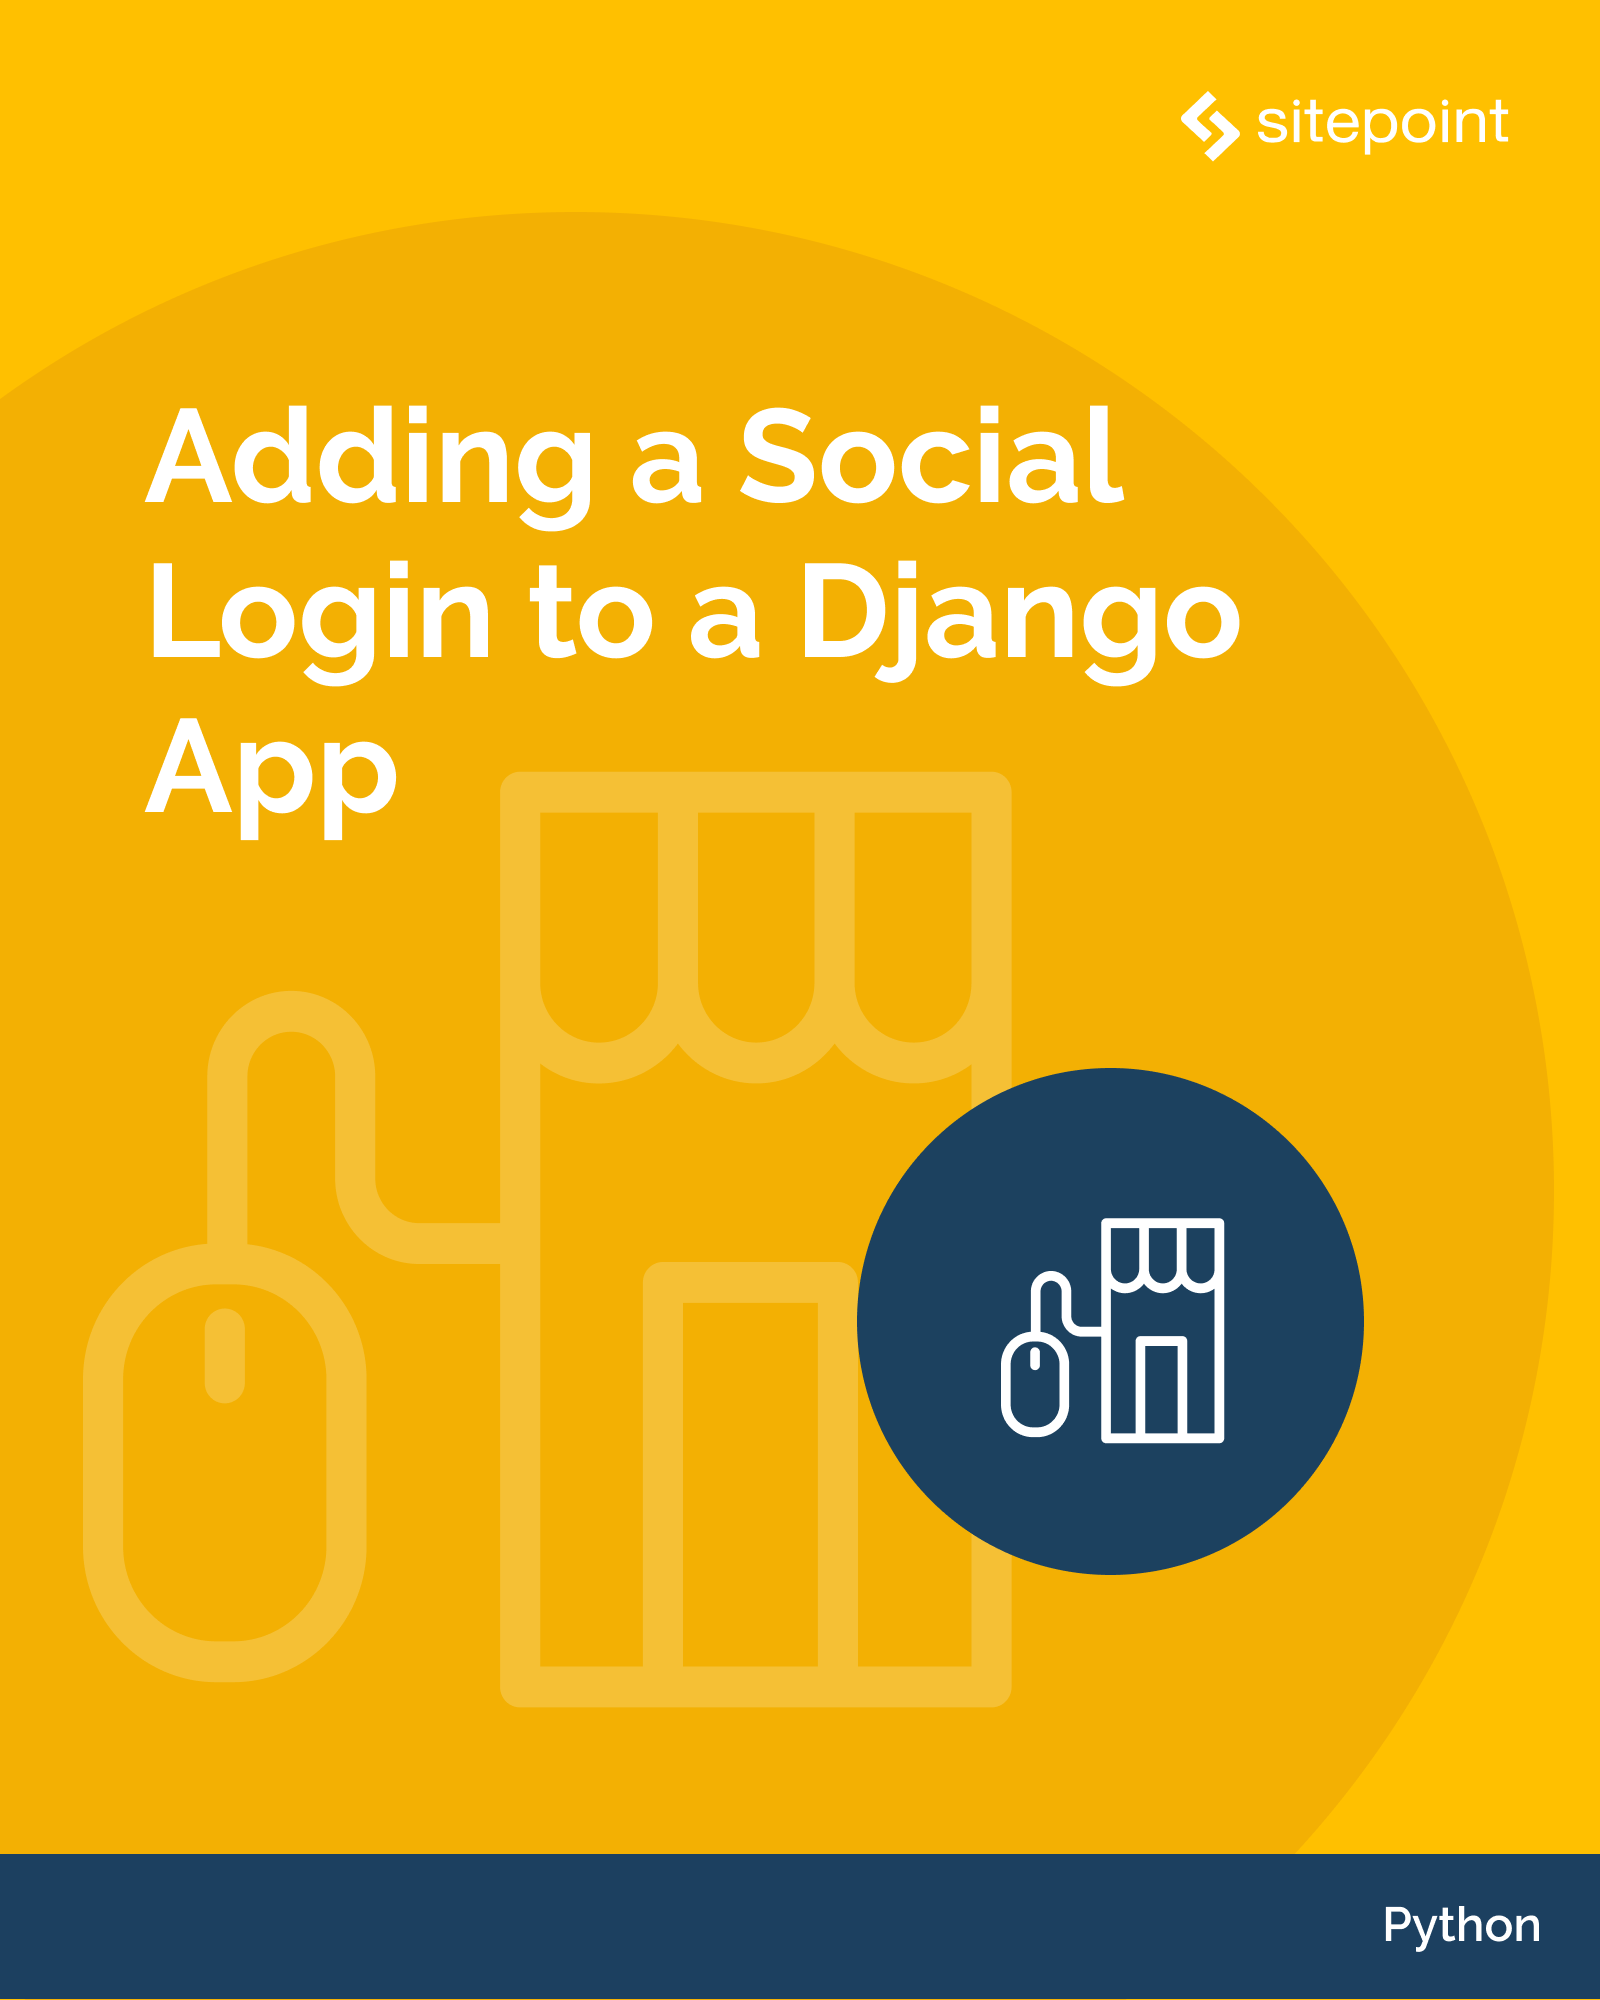 Adding a Social Login to a Django App